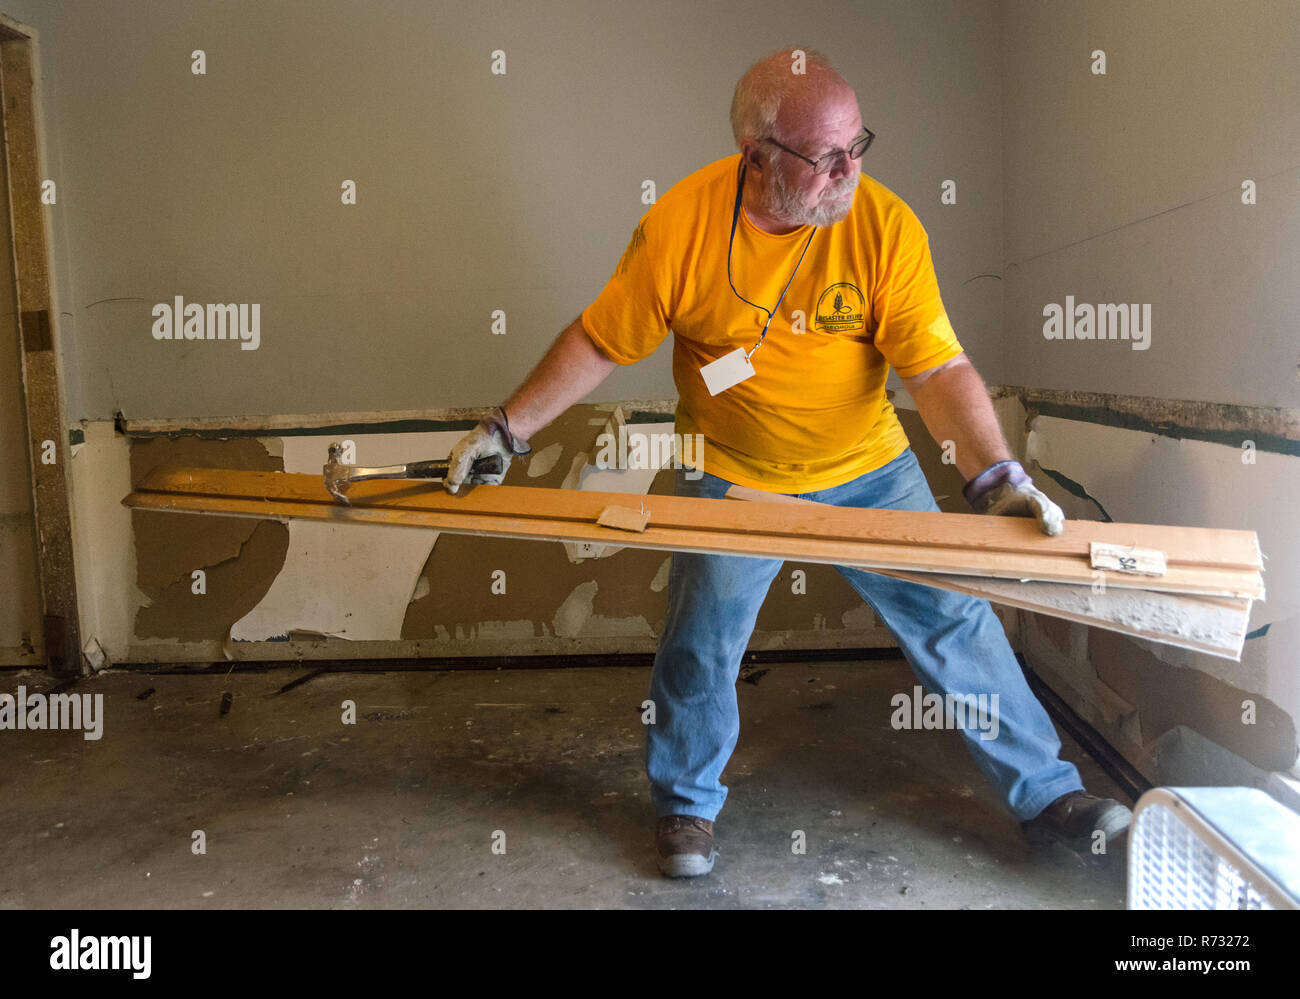 A Southern Baptist Disaster Relief volunteer removes damaged wood from a home after a flood in Denham Springs, Louisiana. - Stock Image